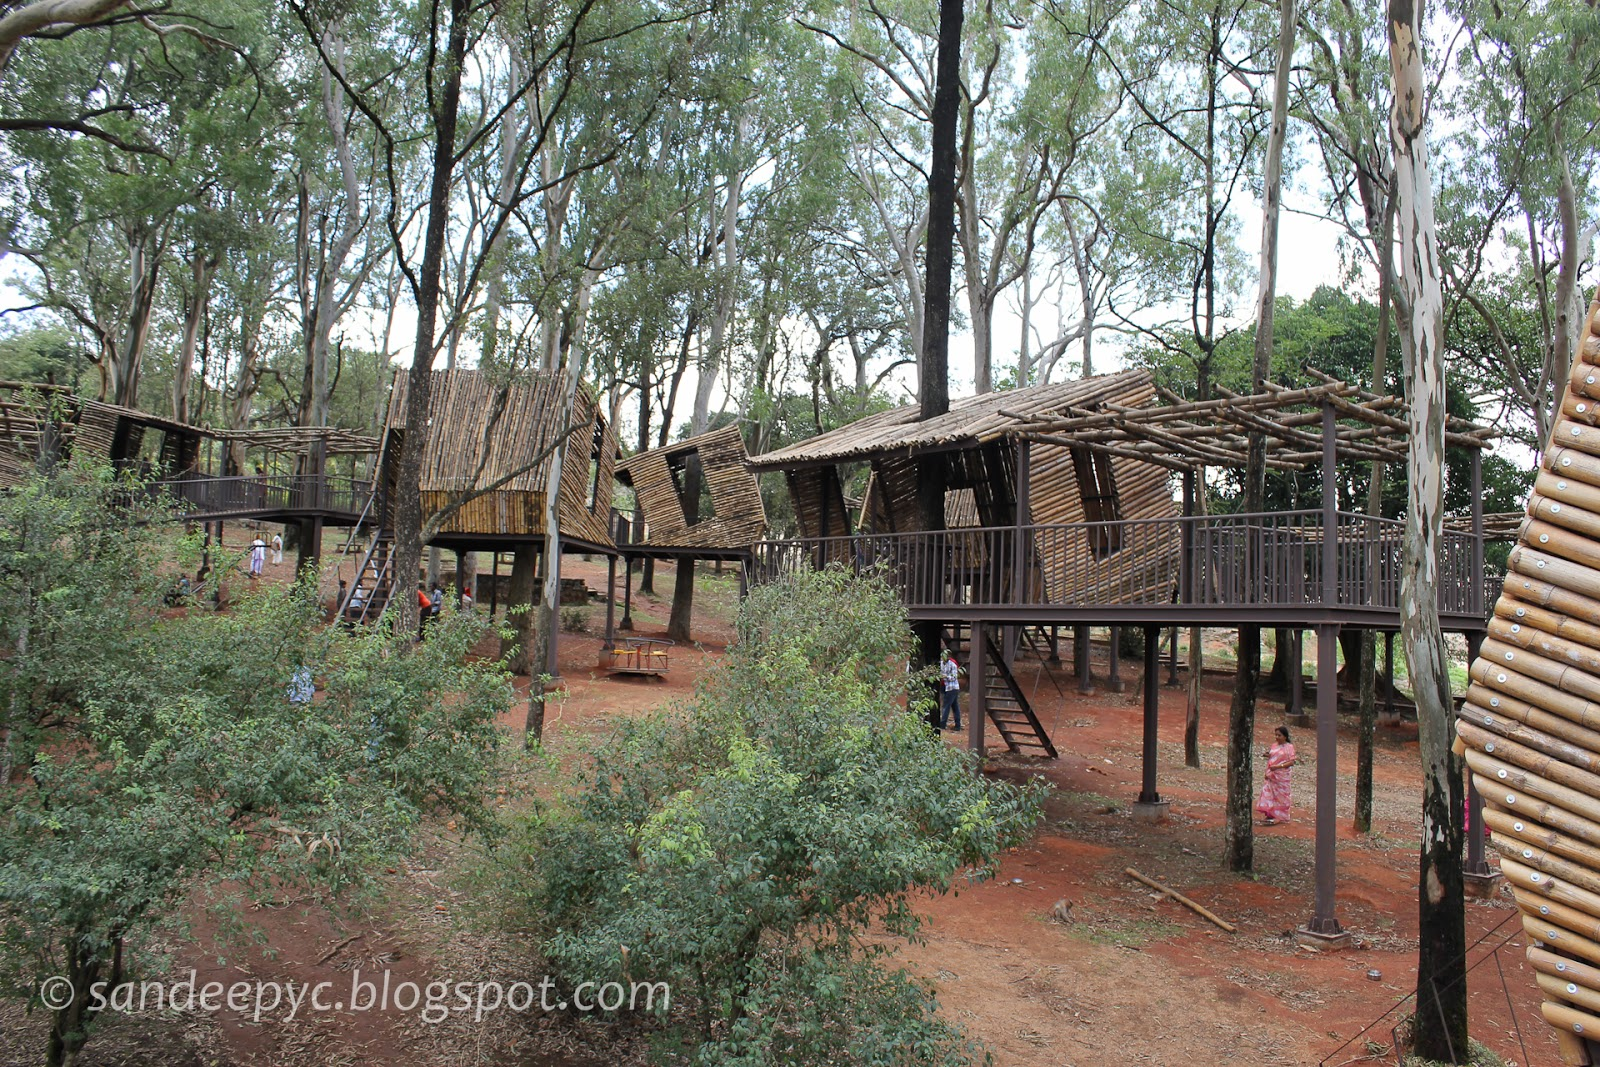 Bamboo houses at Nandi hills